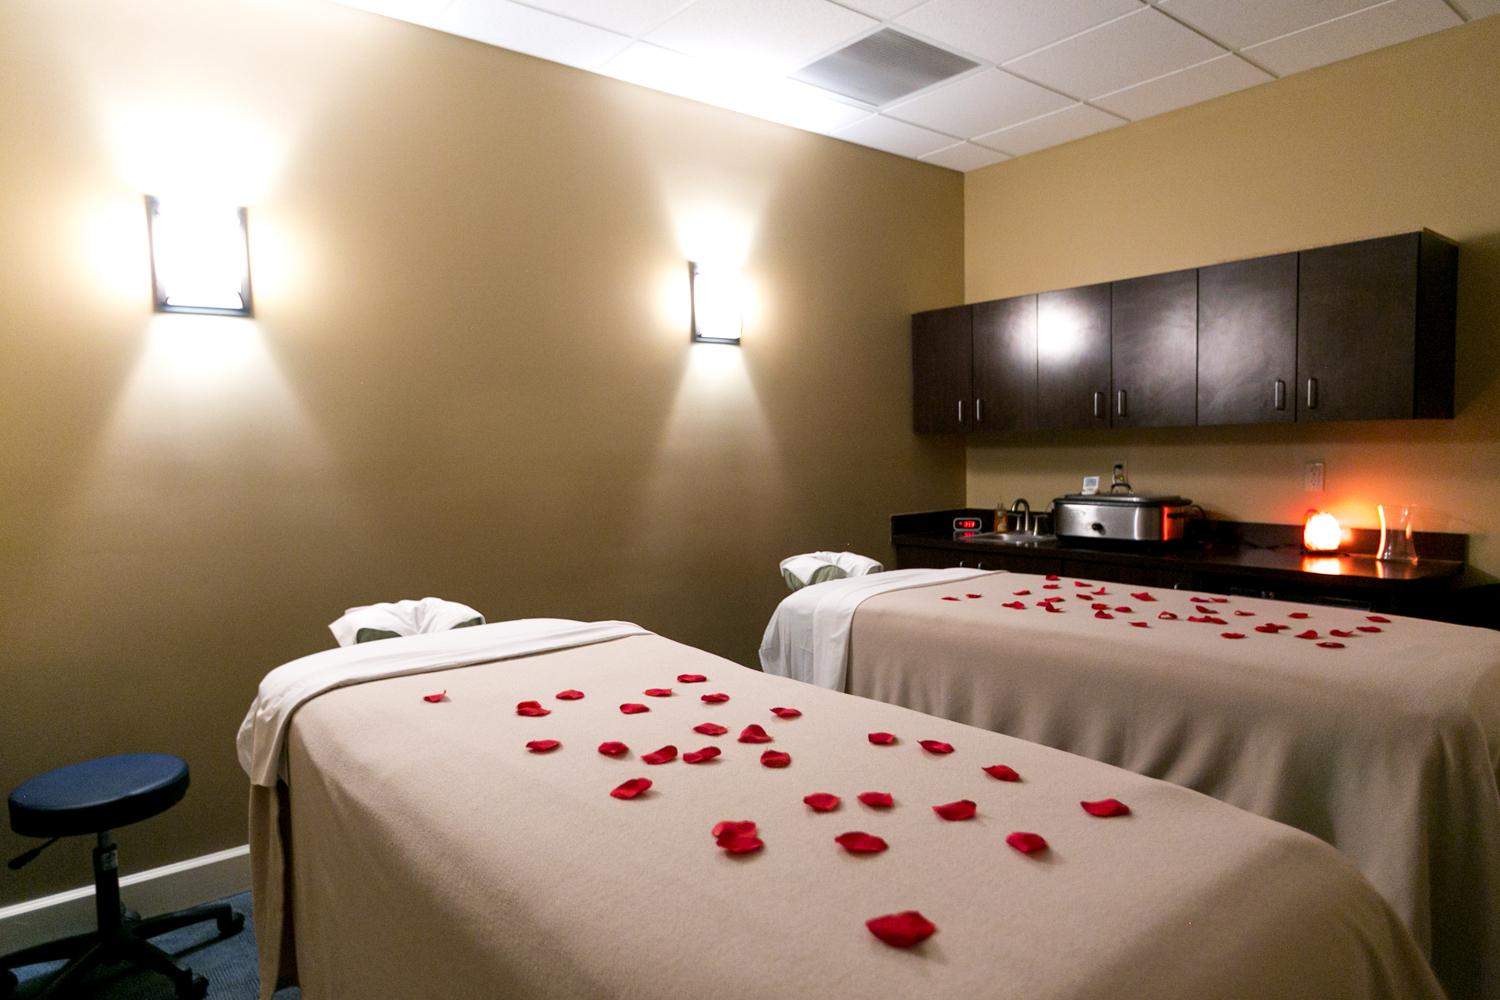 Kick back and escape with a friend or loved one with our Couple's Massage.  Two people can enjoy their massage experience together, side by side, in our Couple's room.  A perfect way to enjoy some quality time together. This room is ideally suited for special occasions, such as Anniversaries, Birthdays and Valentine's Day!